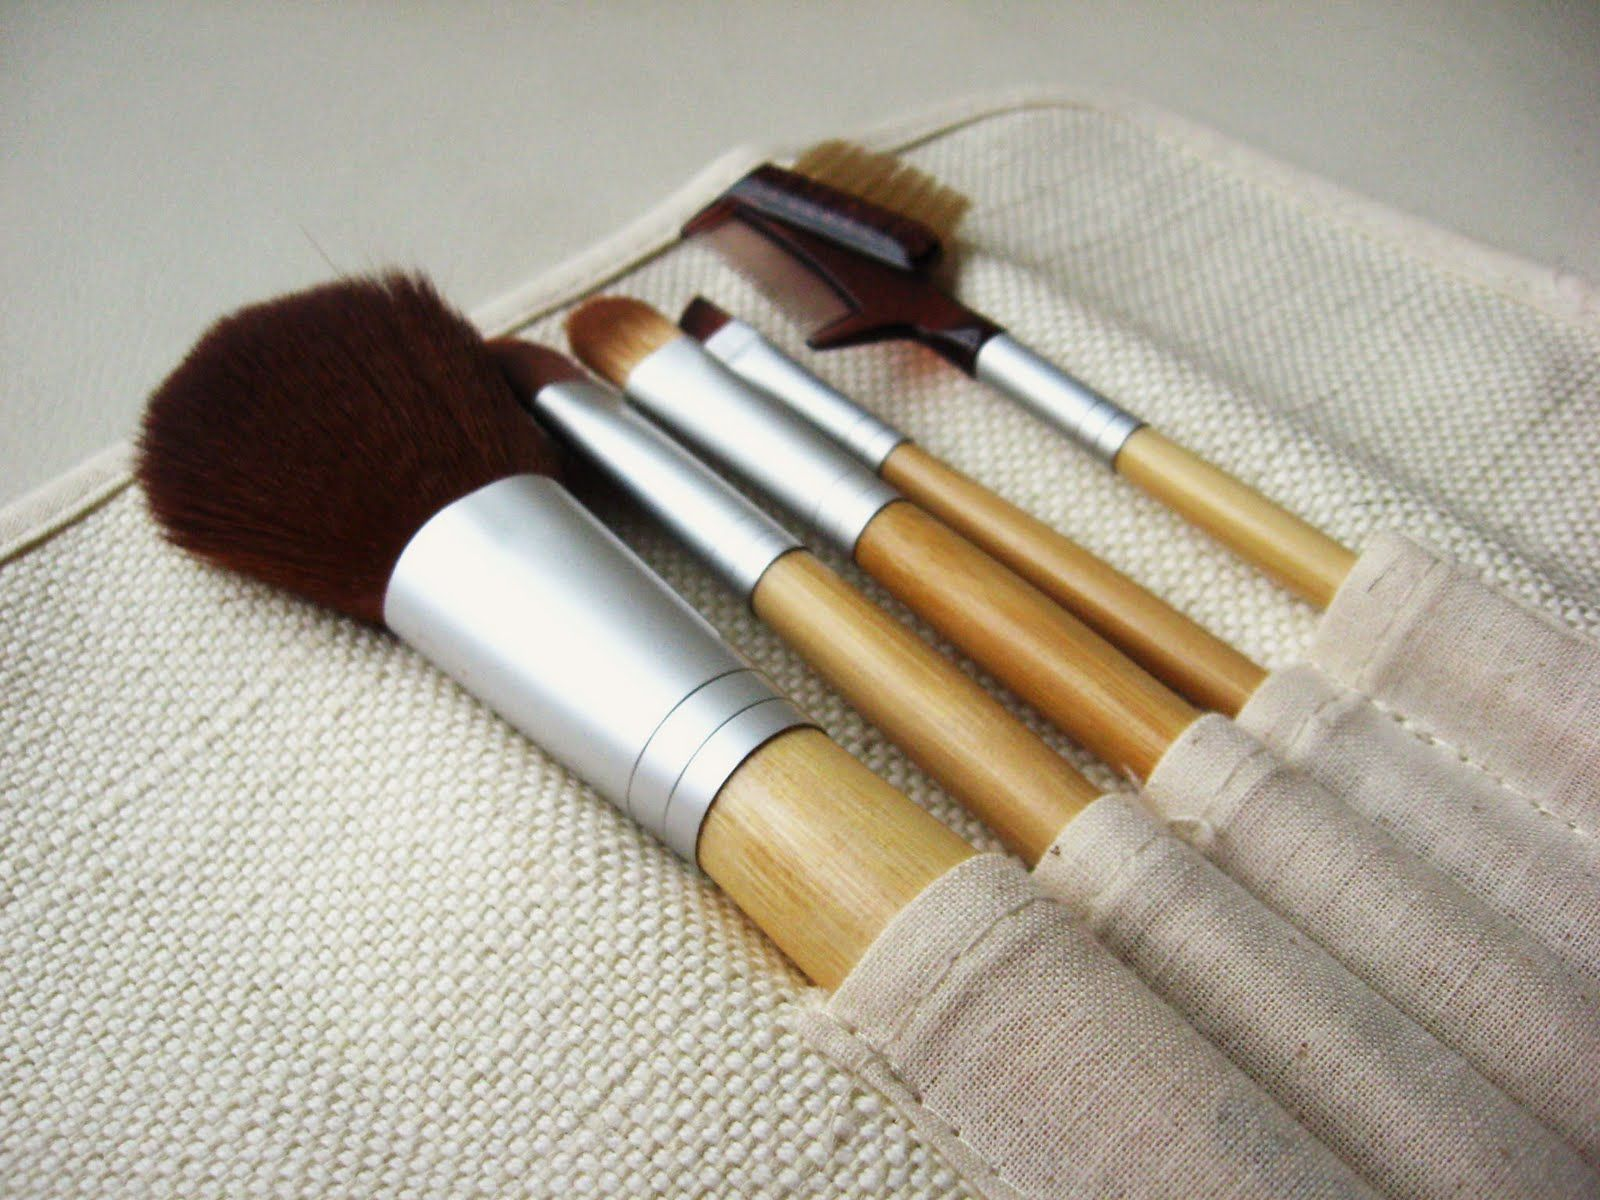 Eco Tools Brush Set Makeup, beauty blog, Makeup, Brush set